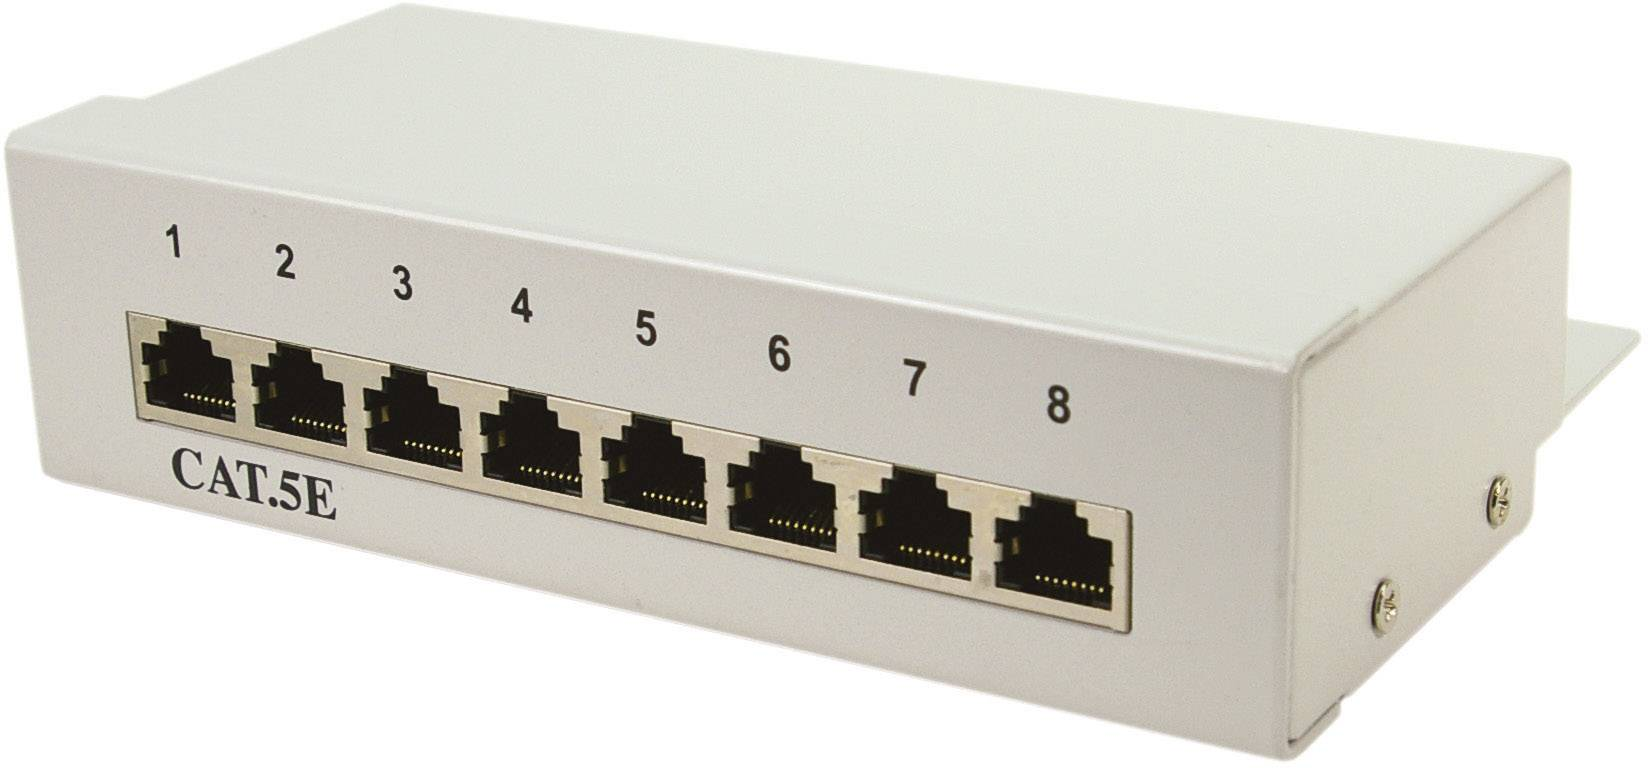 logilink np0038 8 ports network patch box cat 5e [ 1000 x 1000 Pixel ]